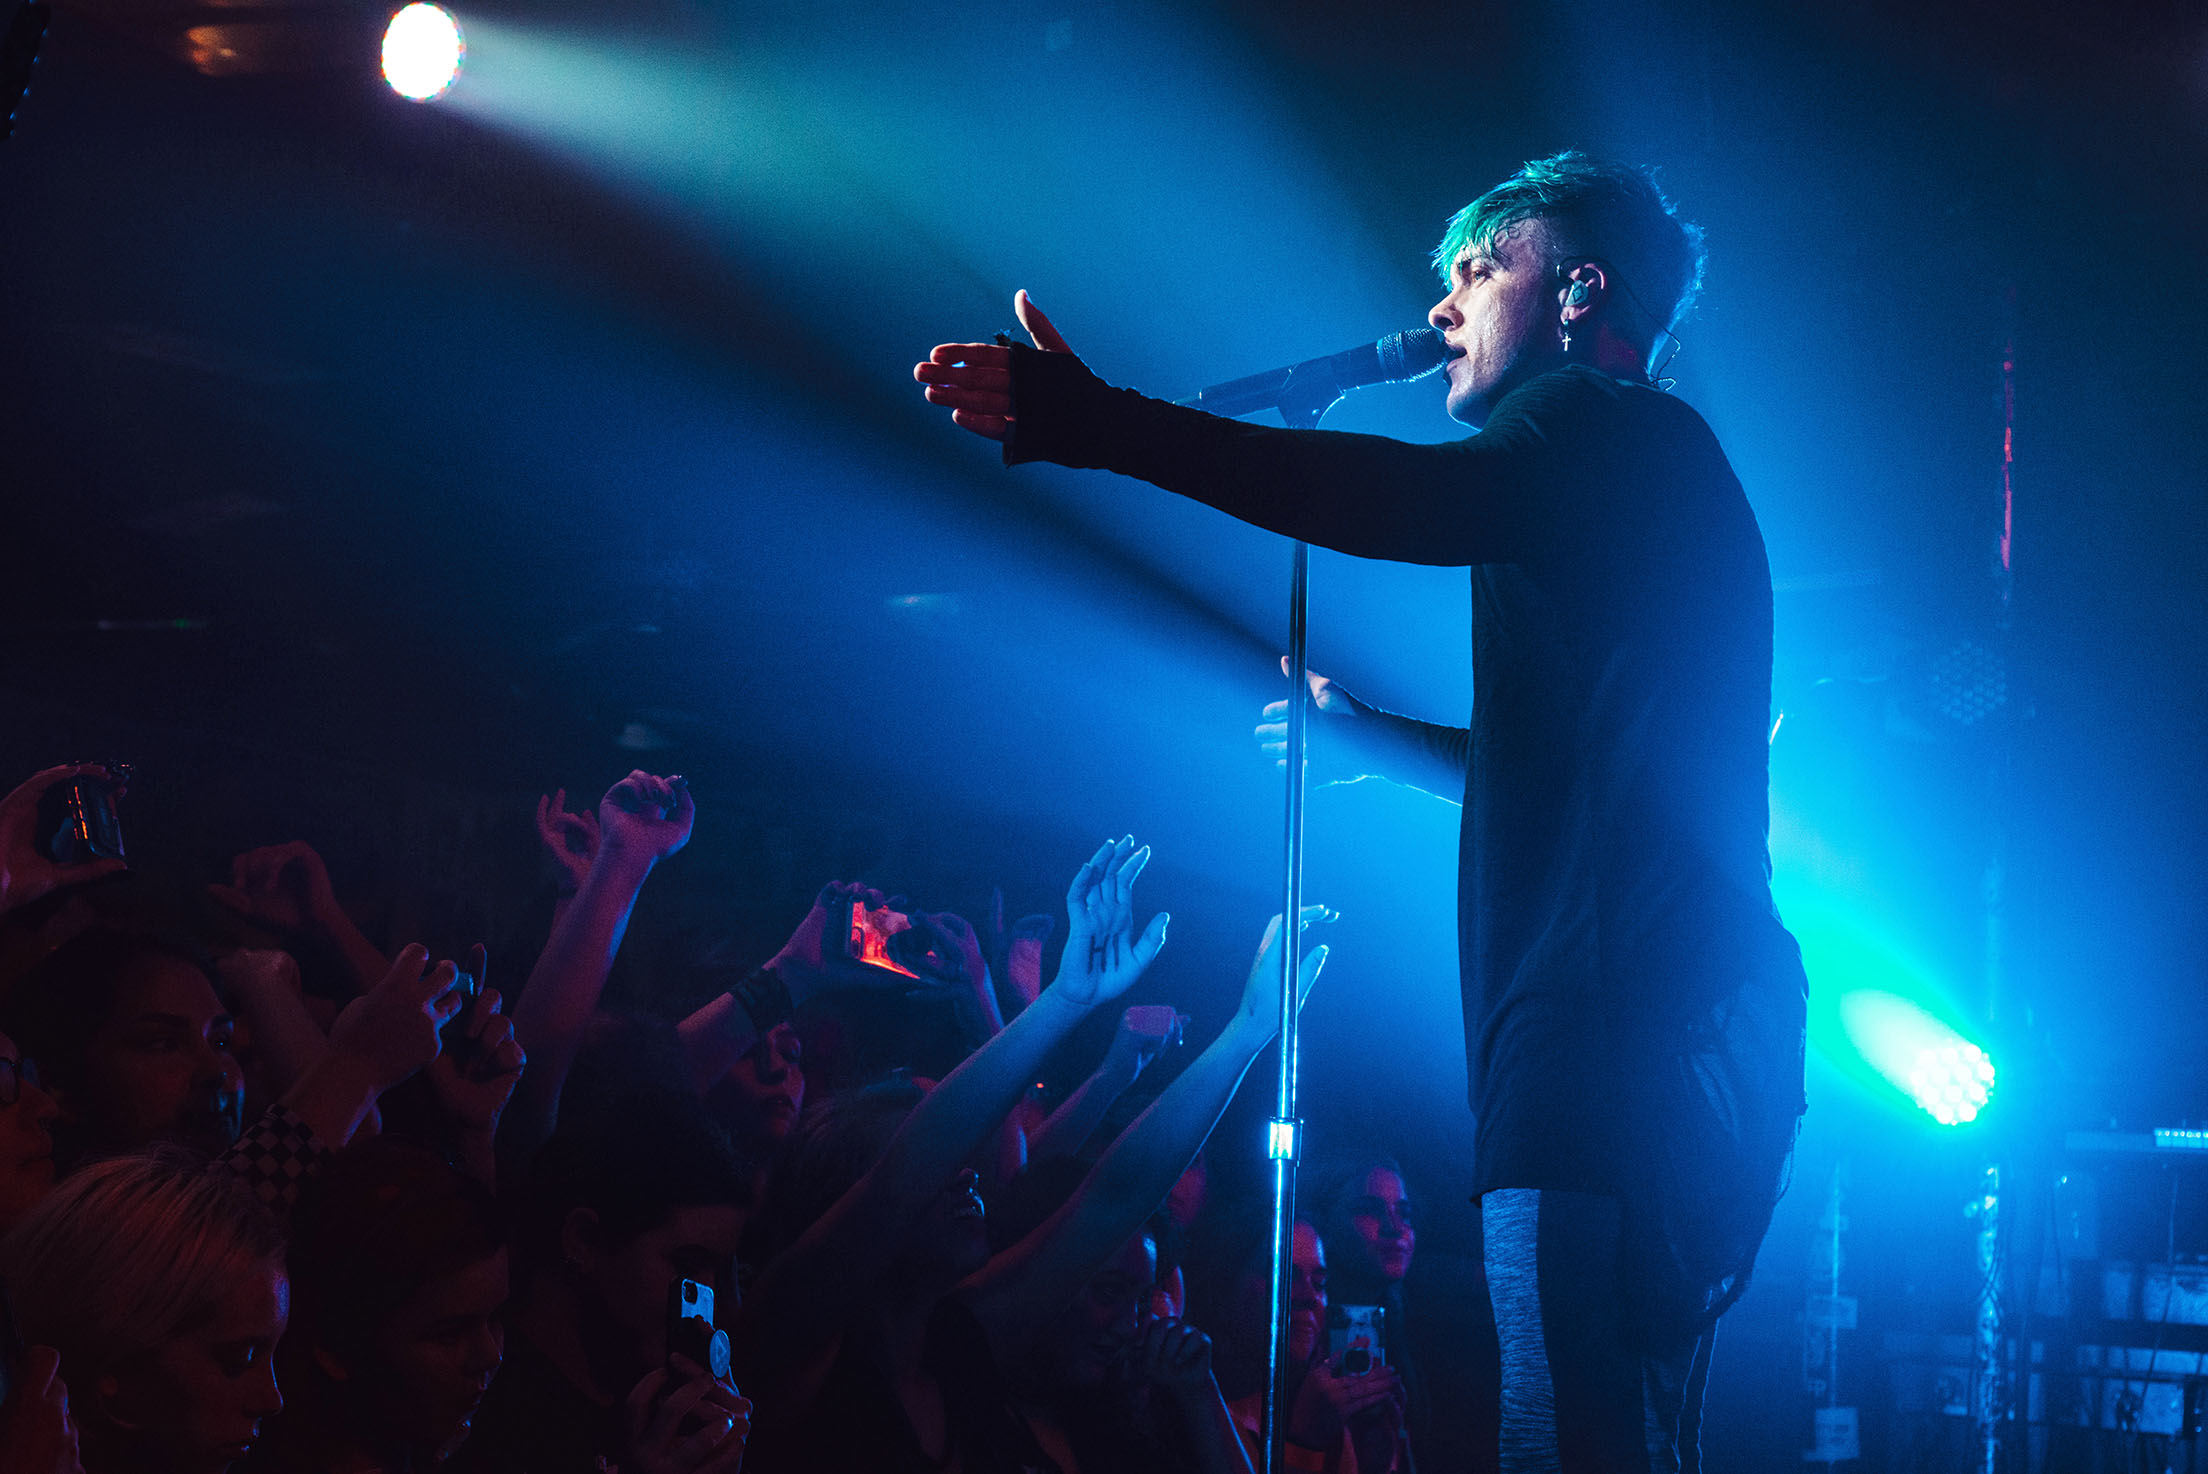 set it off cody carson lead singer band concert rock photo photography image